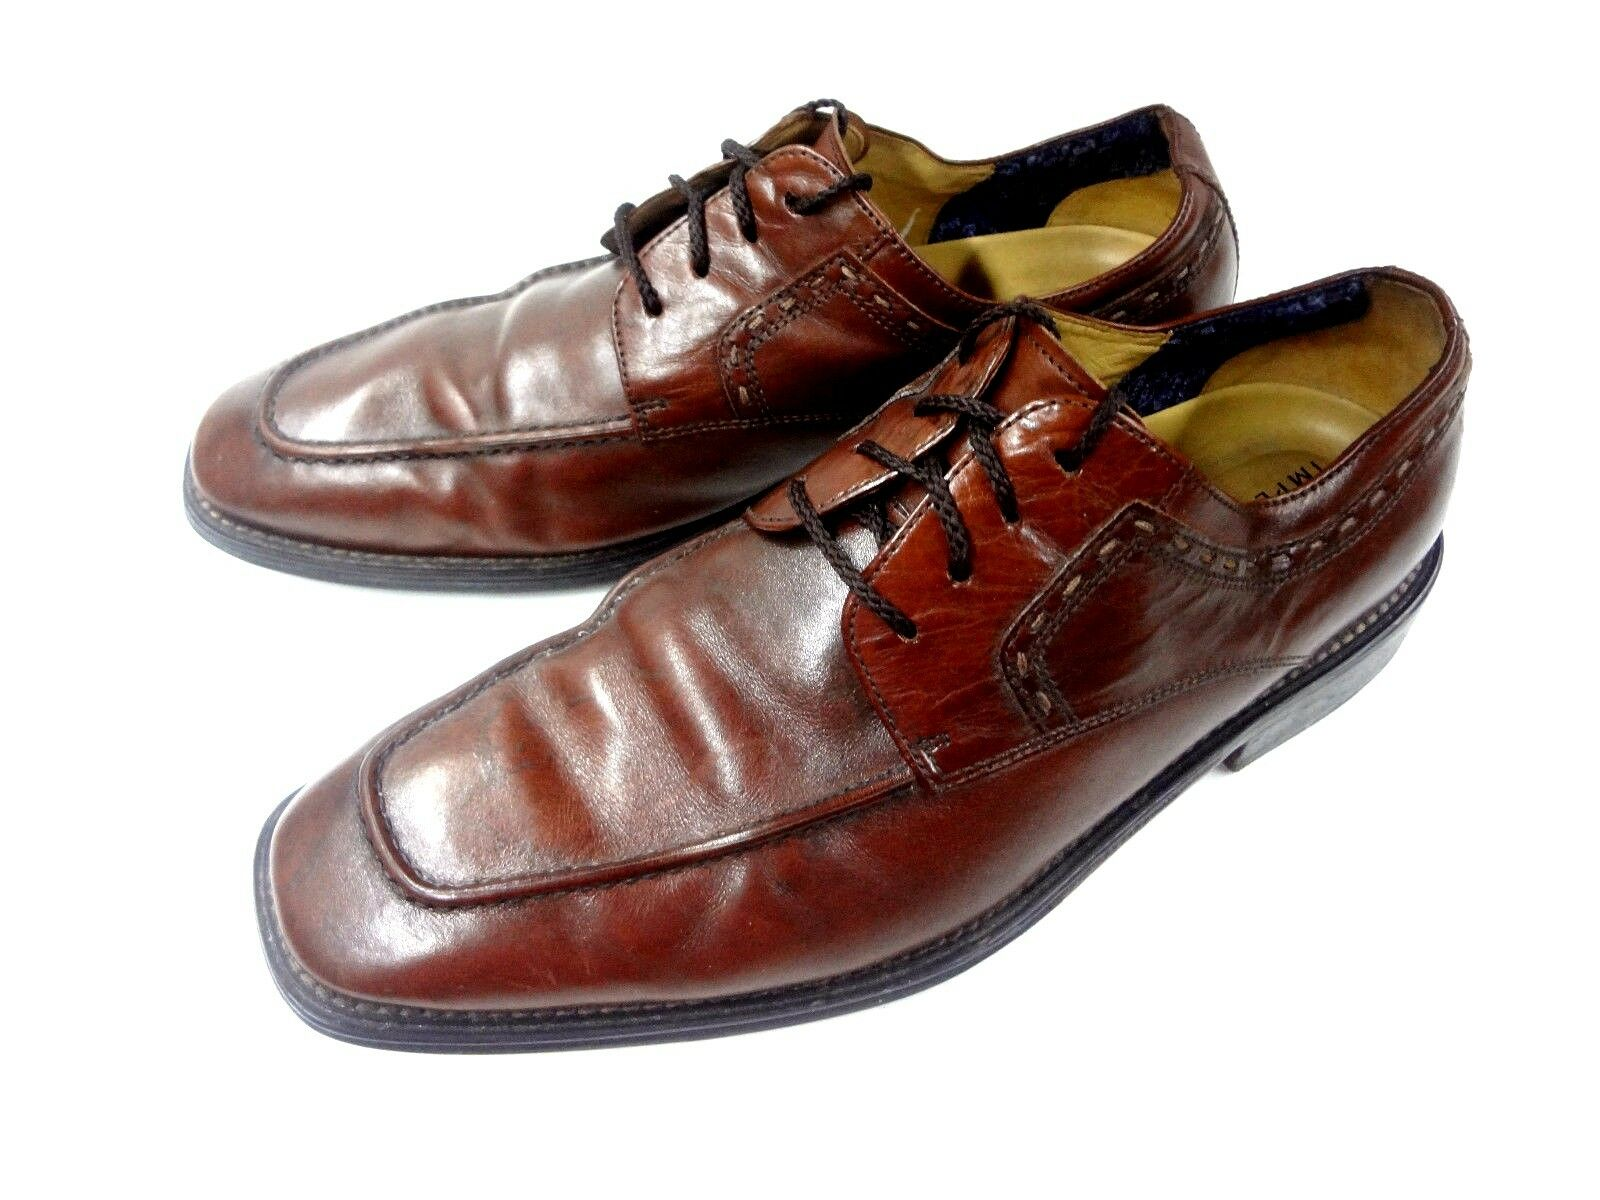 FLORSHEIM IMPERIAL OXFORD 10 D LACE UP DRESS BROWN LEATHER MENS SHOES